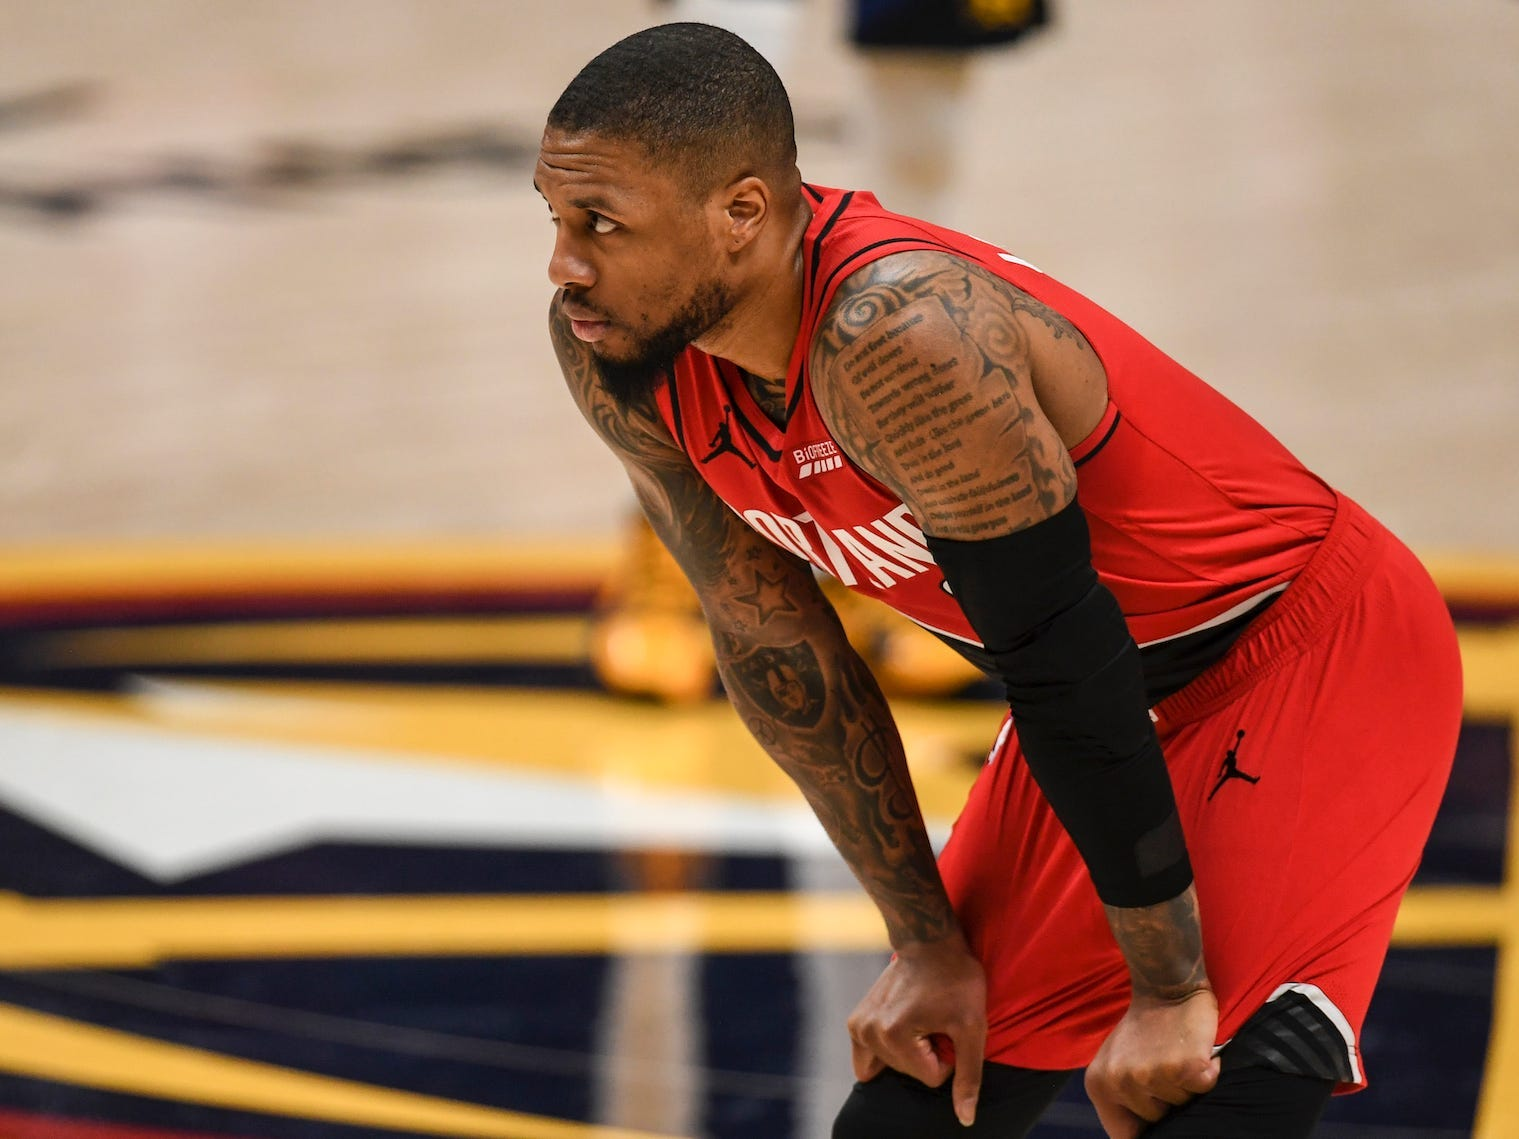 The NBA season is over - Here are the big storylines to watch in another hectic offseason